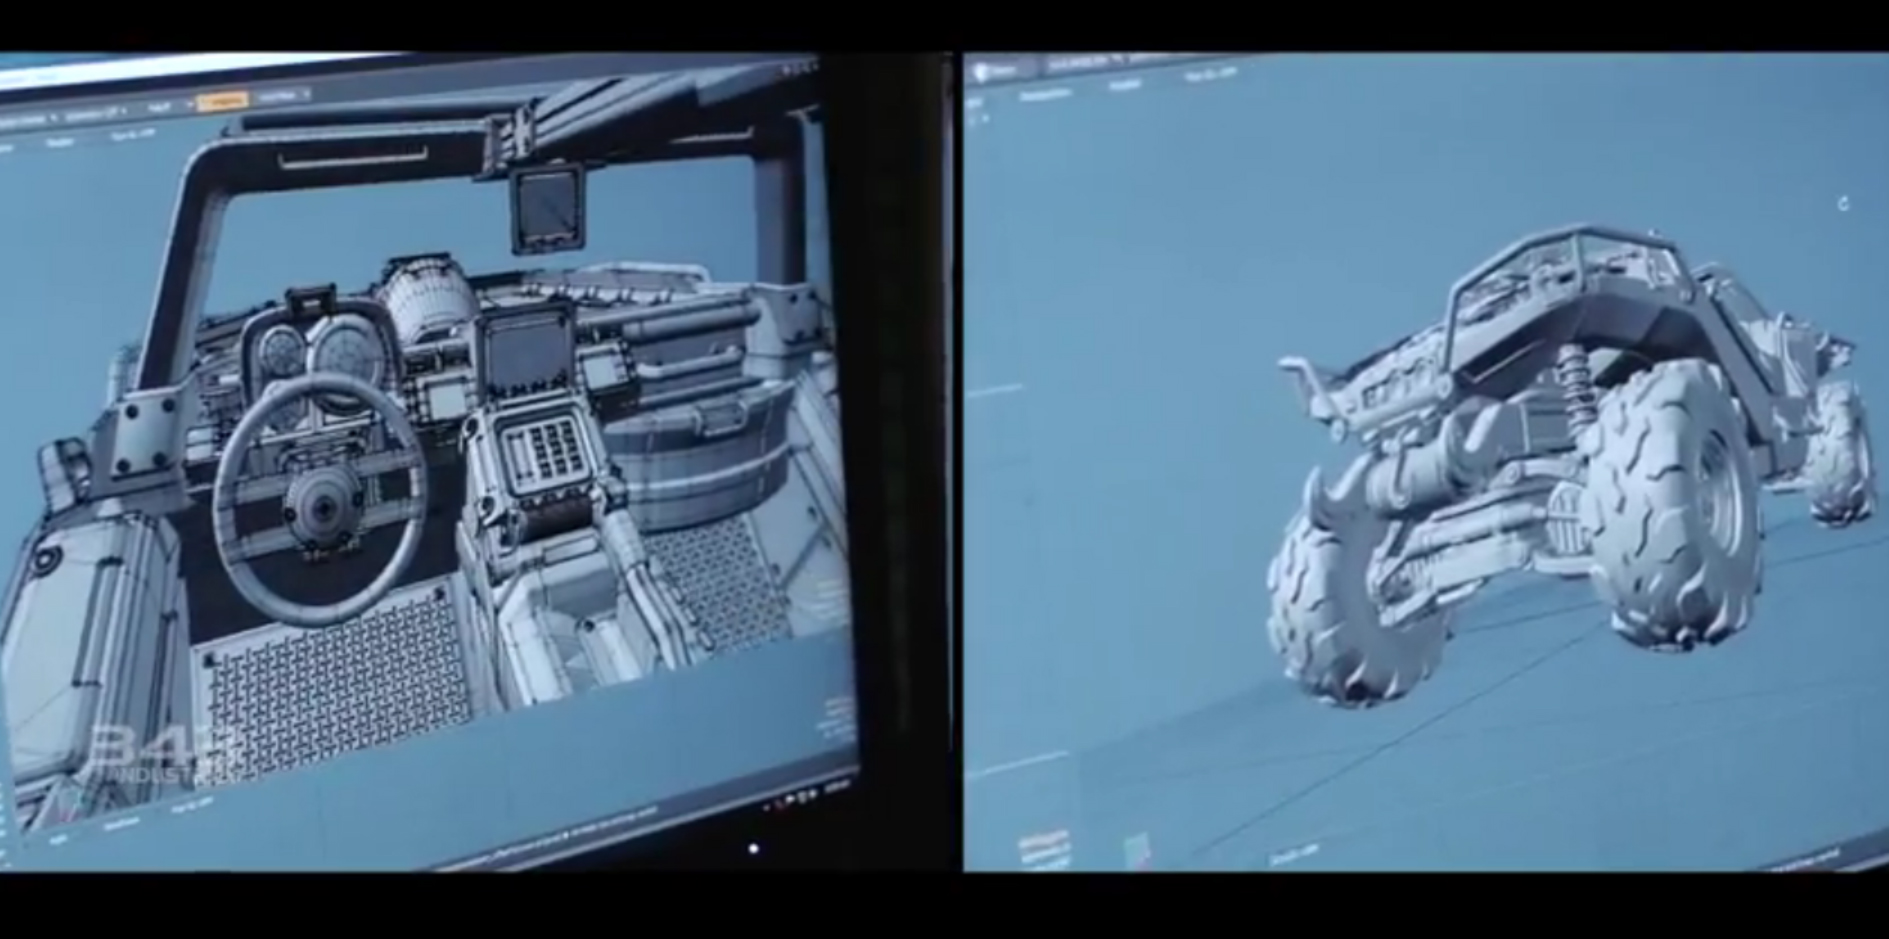 official halo 4 screens image